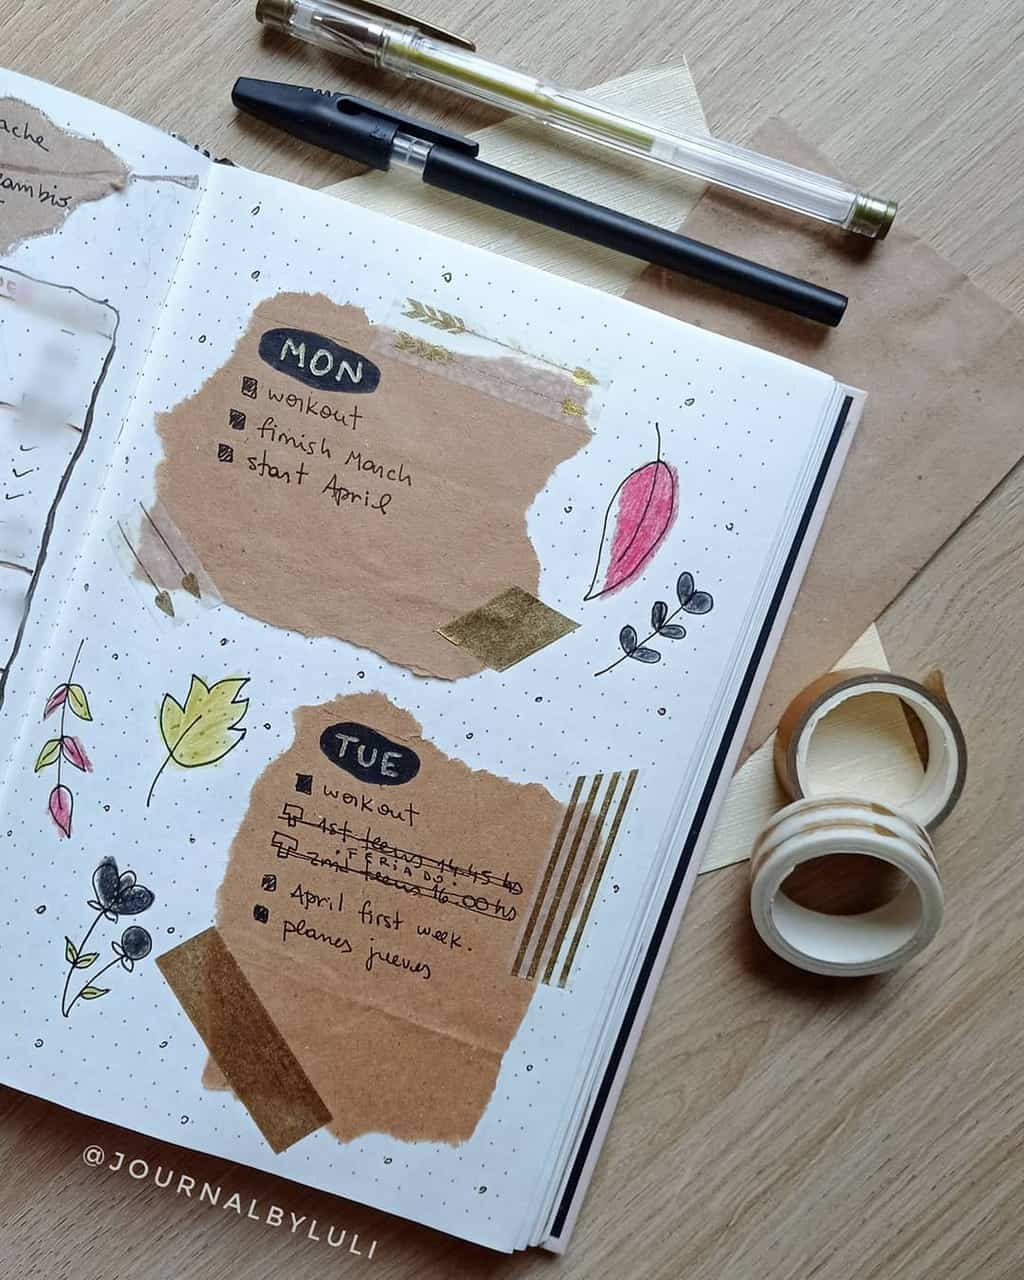 Kraft Paper Fall Bullet Journal Inspirations - weekly spread by @journalbyluli | Masha Plans